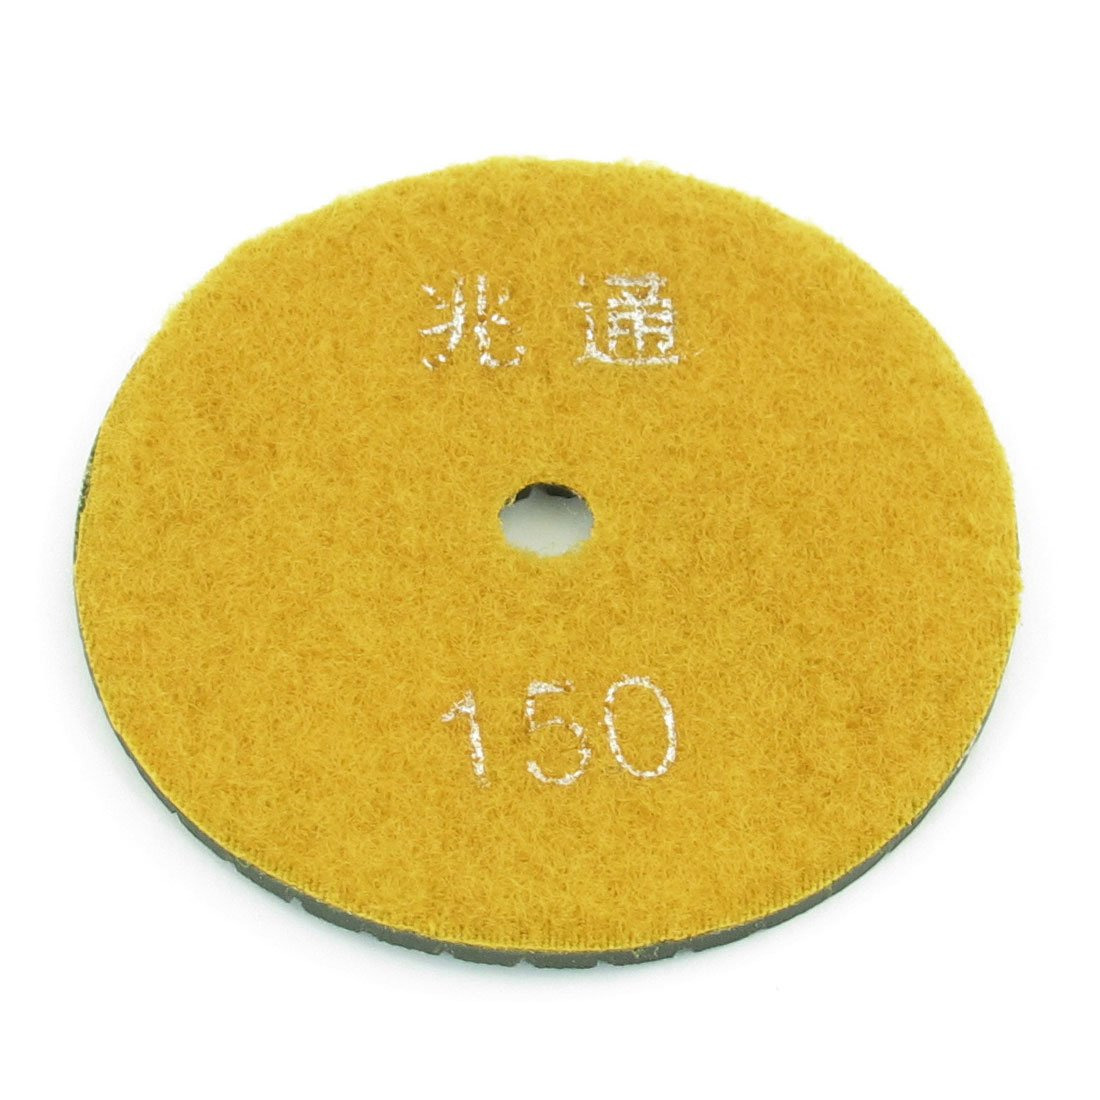 Ltd Uxcell 3-Inch Diameter Grit 150 Tile Stone Grinder Diamond Polishing Pad Dragonmarts Co // Uxcell a13090500ux1096